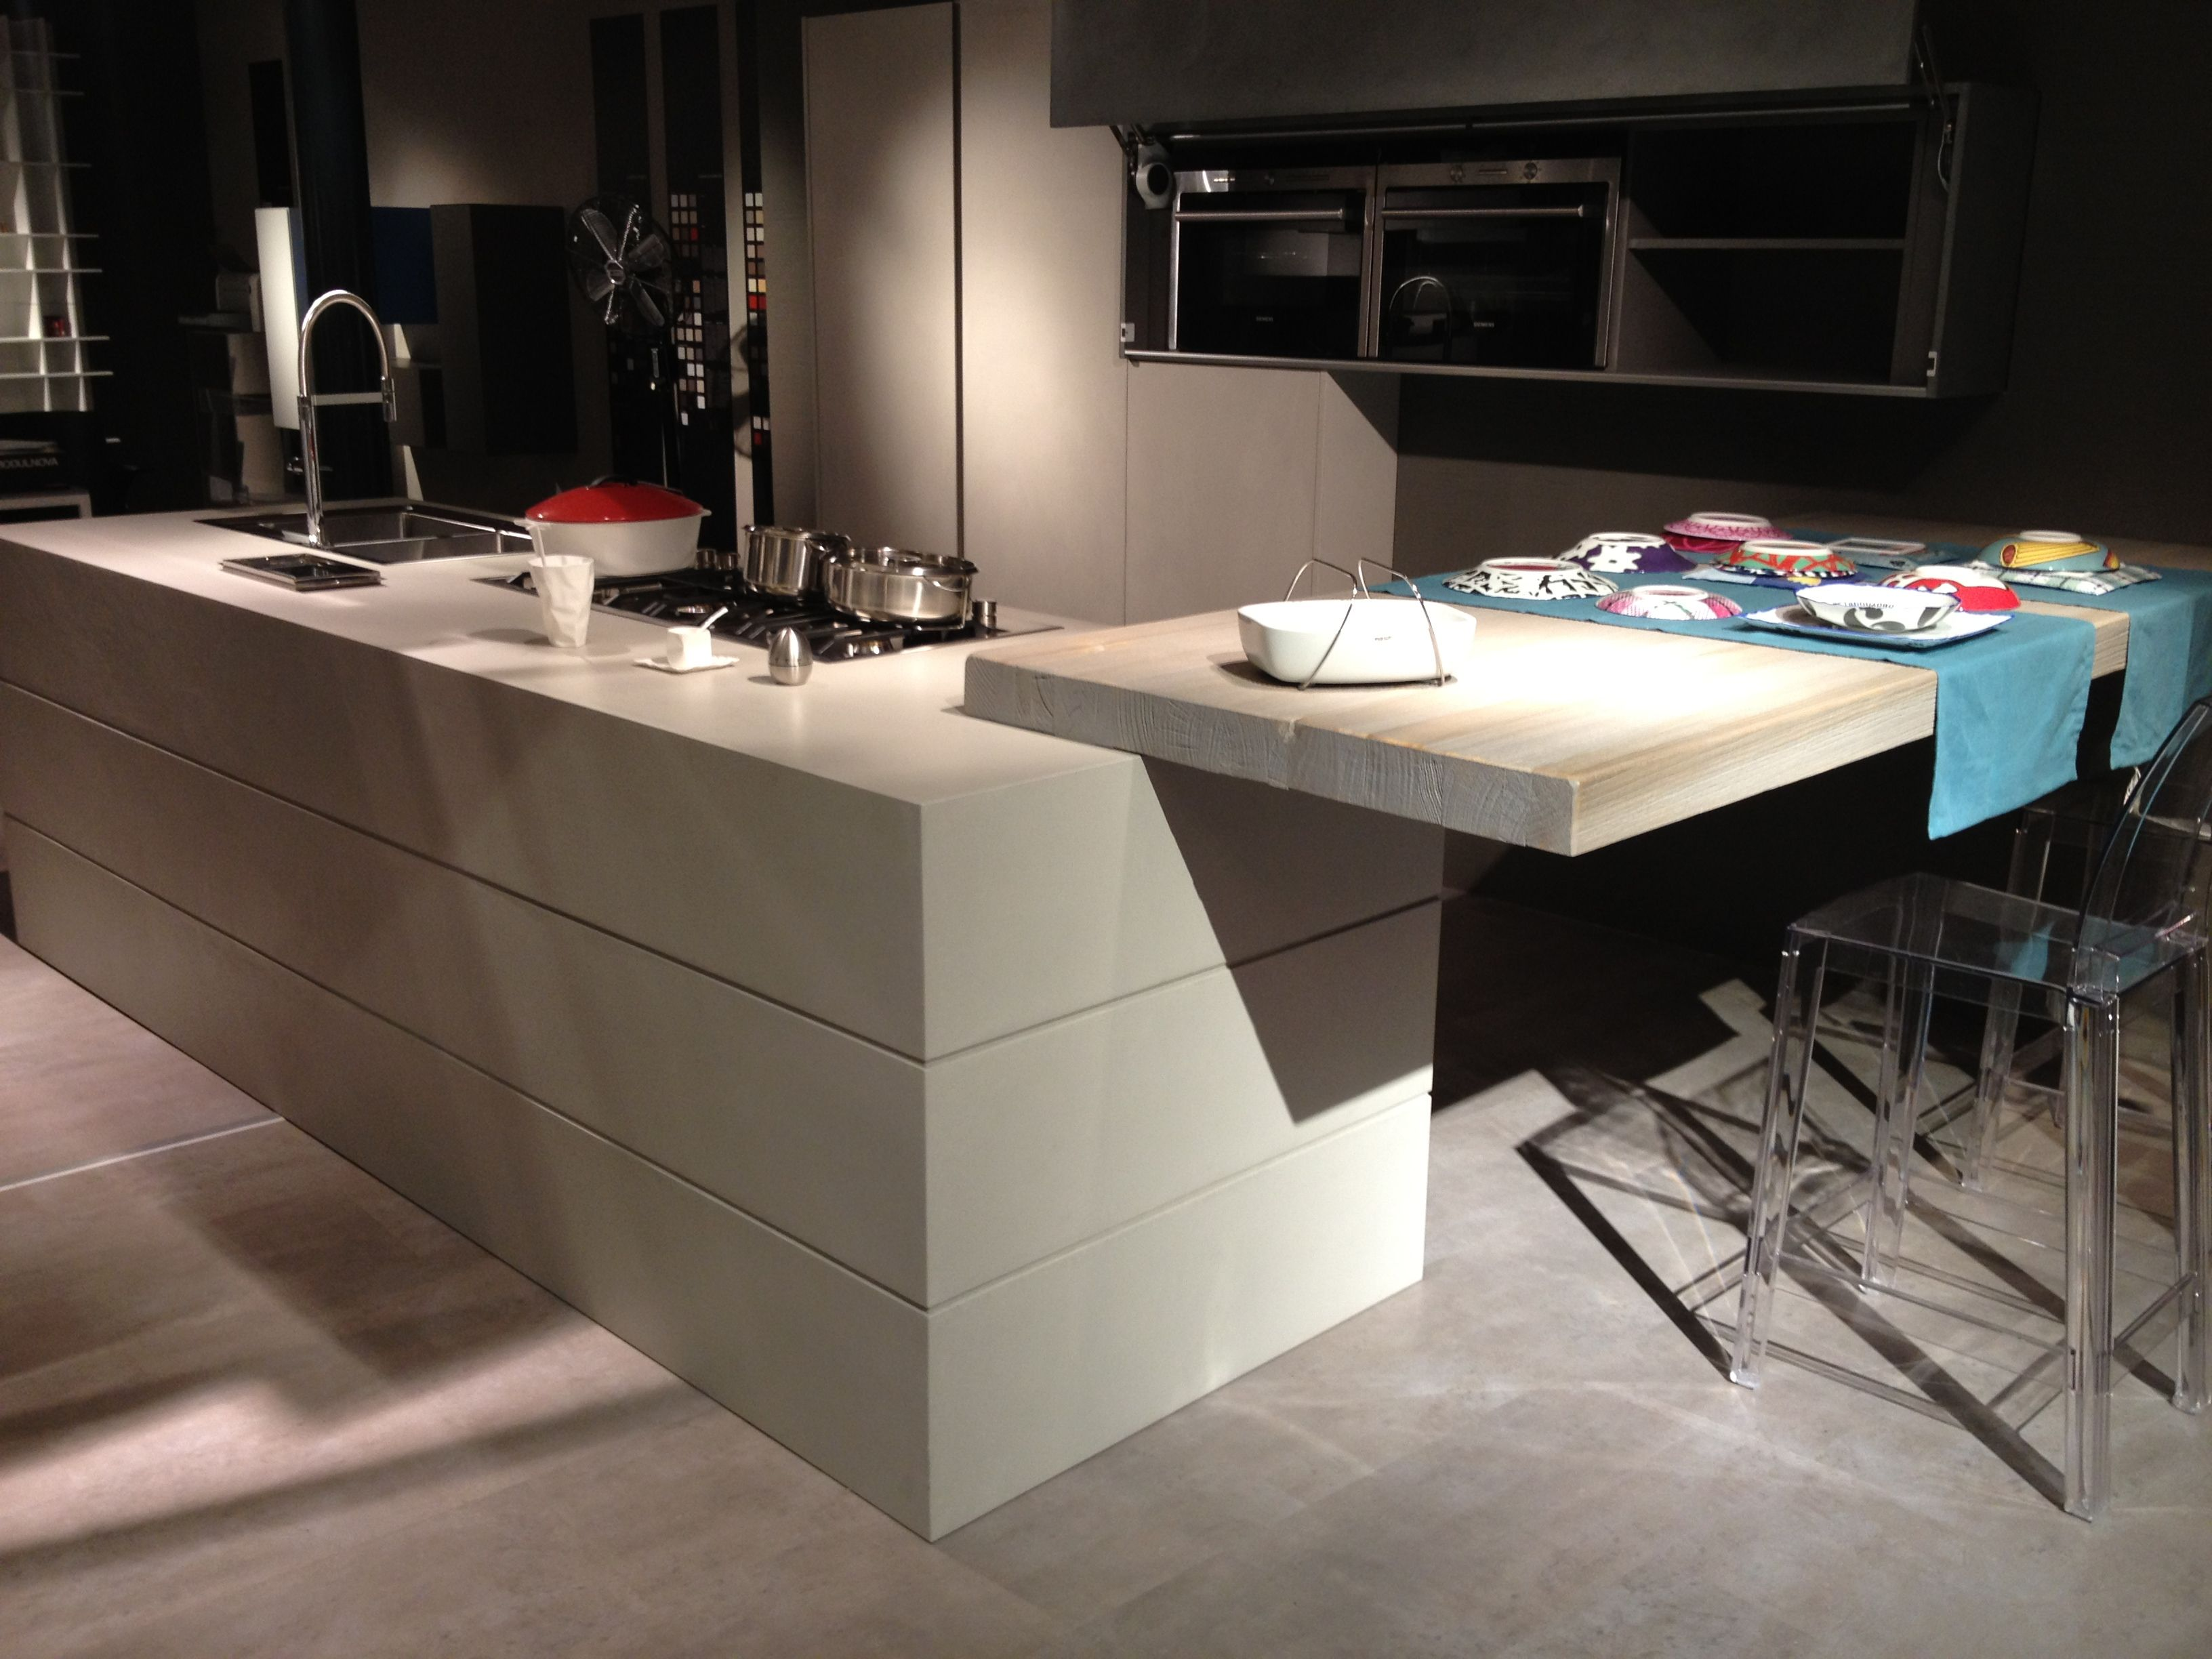 Cucina Concreta Modulnova Cucina Twenty Cemento Homespiration Kitchen